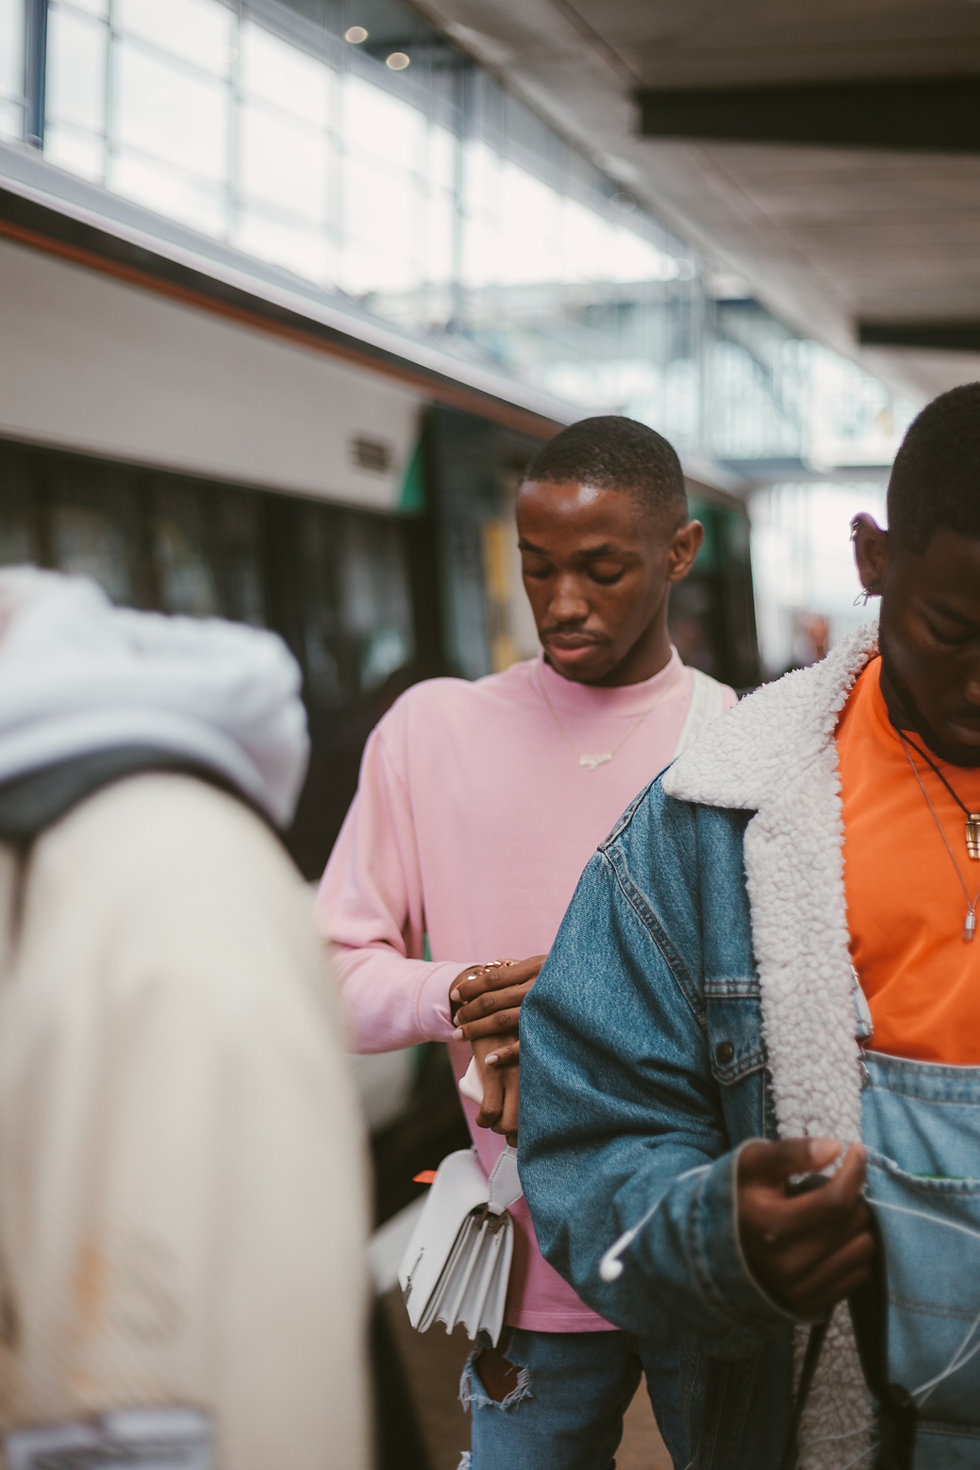 Two men standing in line in the Subway